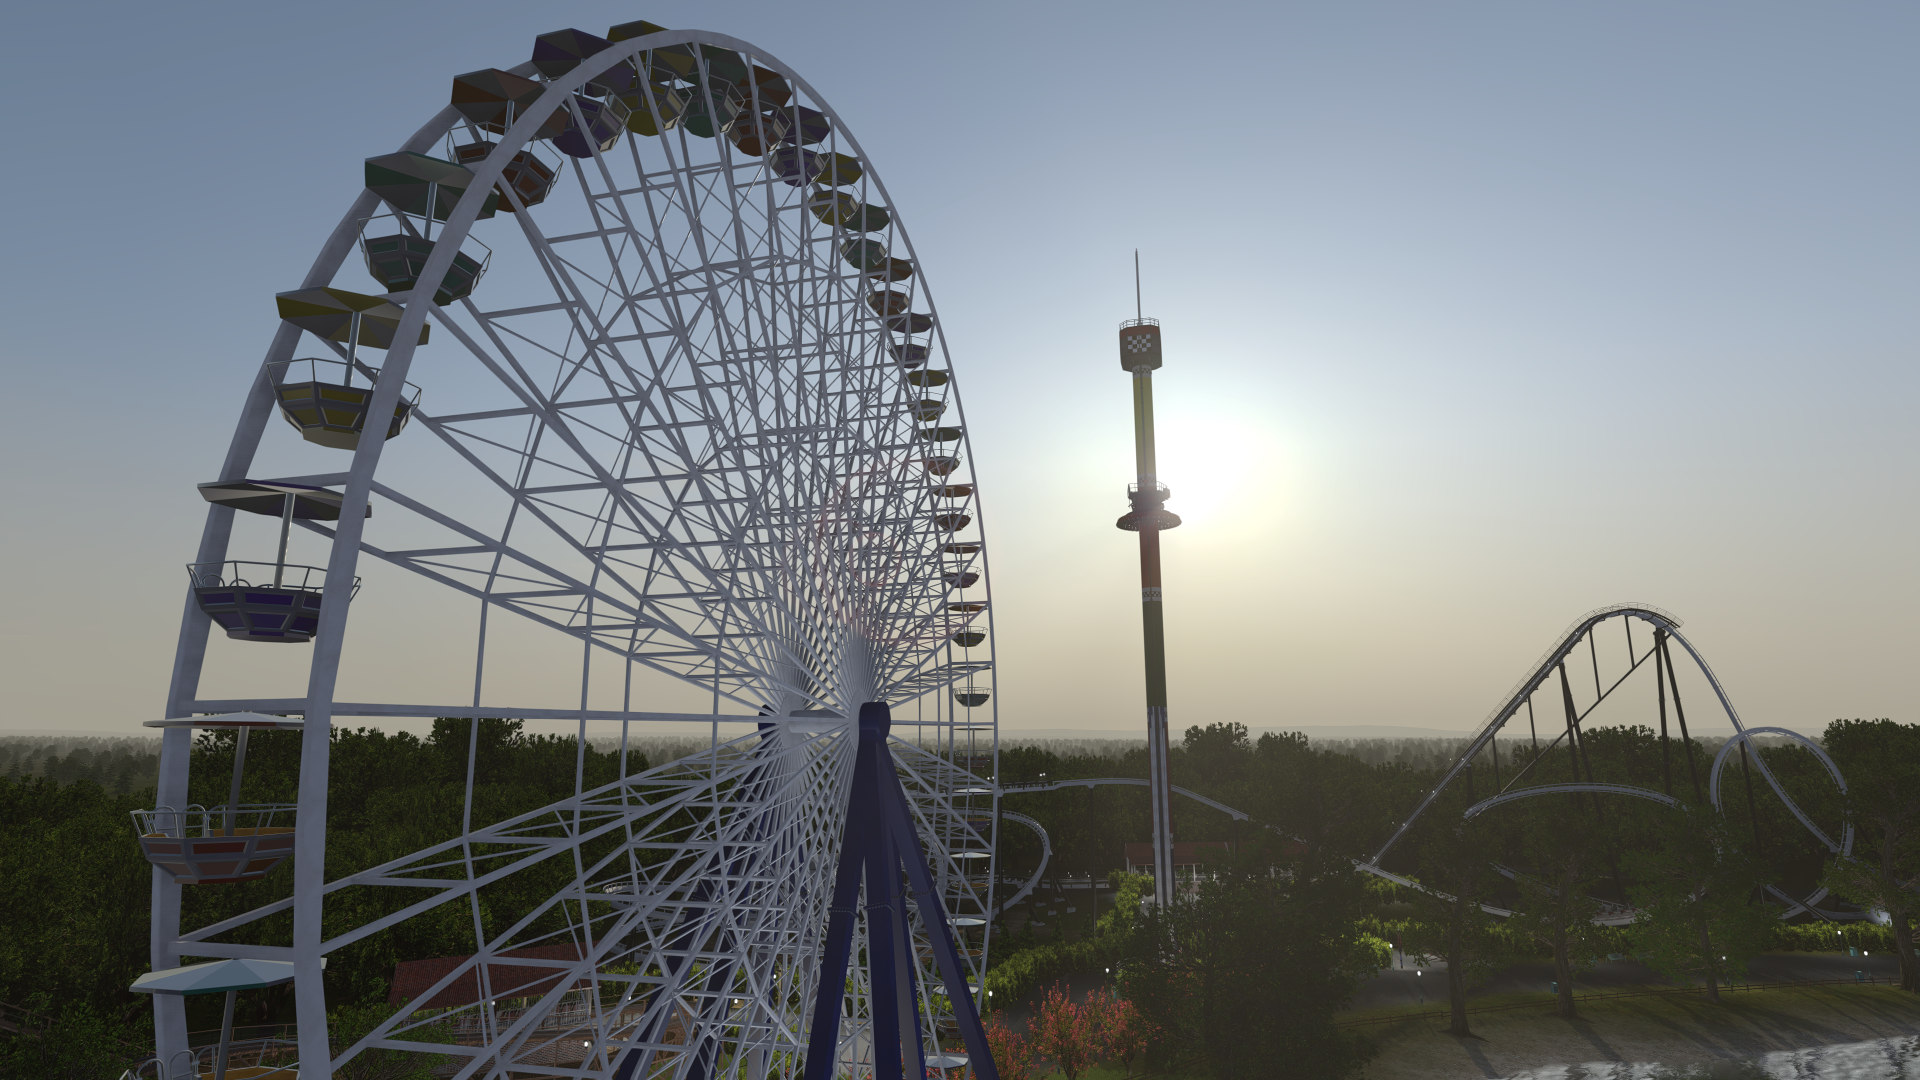 No limit roller coaster free download.